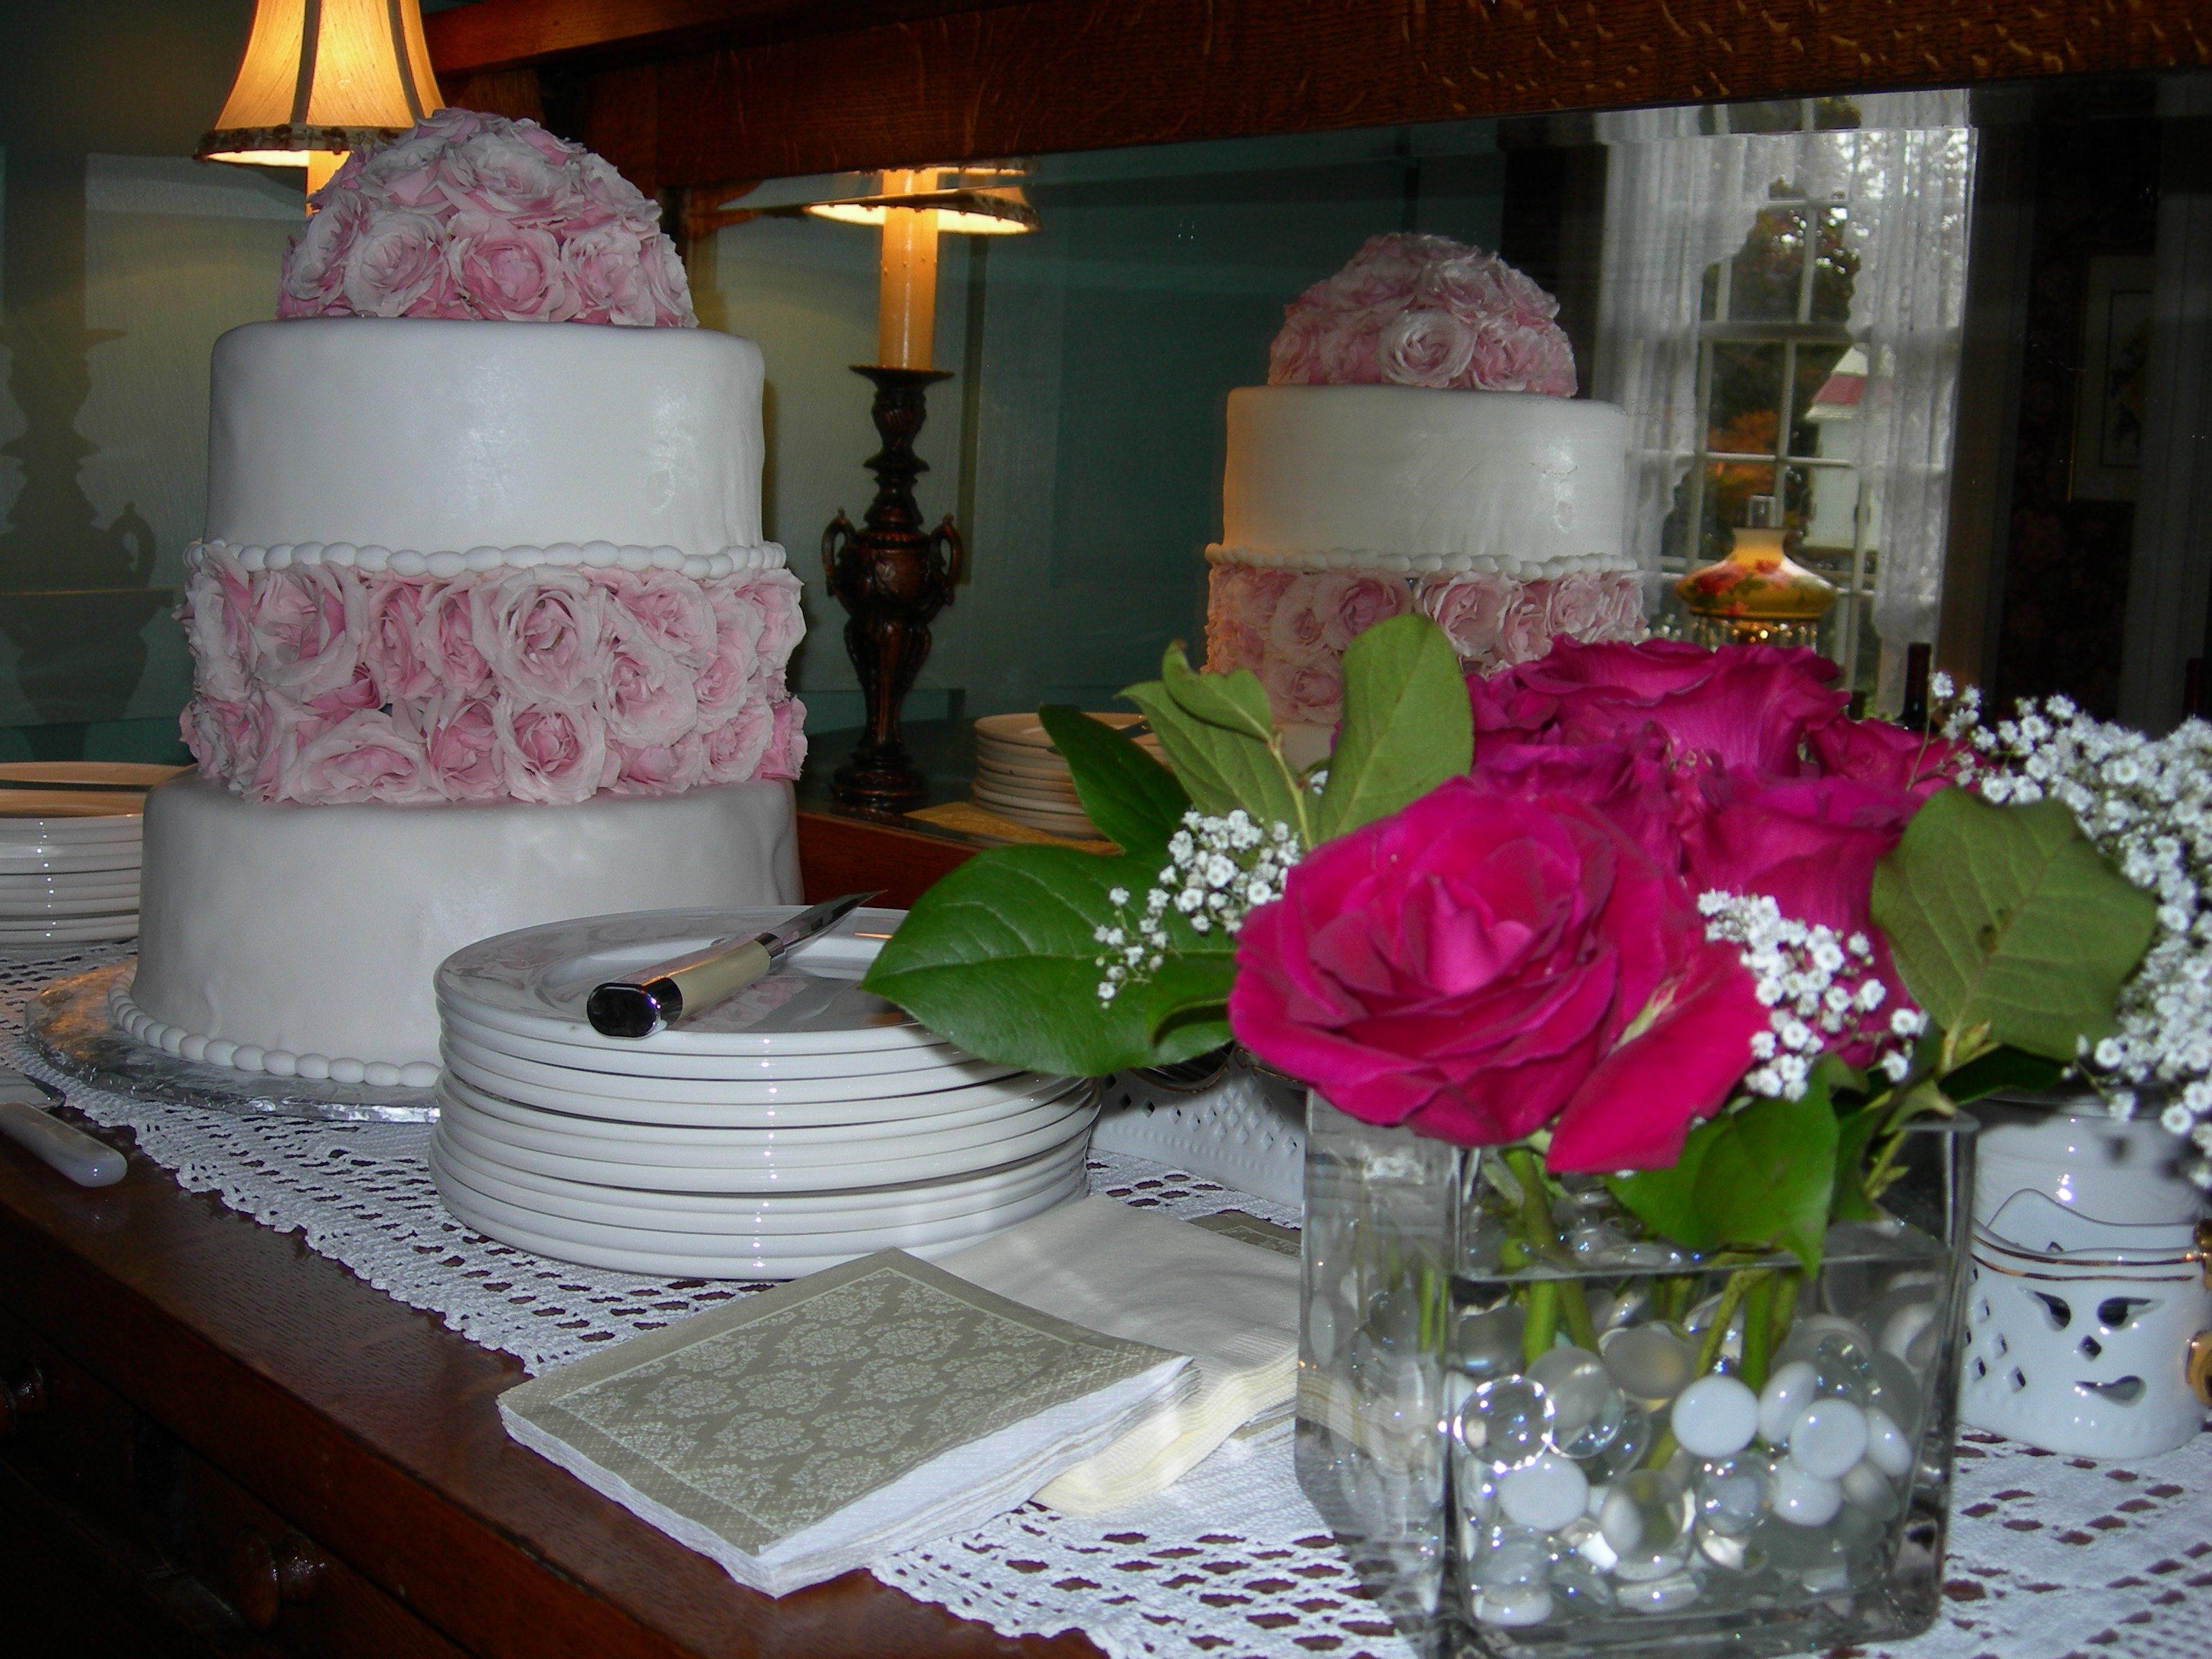 Cakes, Registry, cake, Bed, Bedding, And, Breakfast, Inn, Street, Manor, Main, Flowery